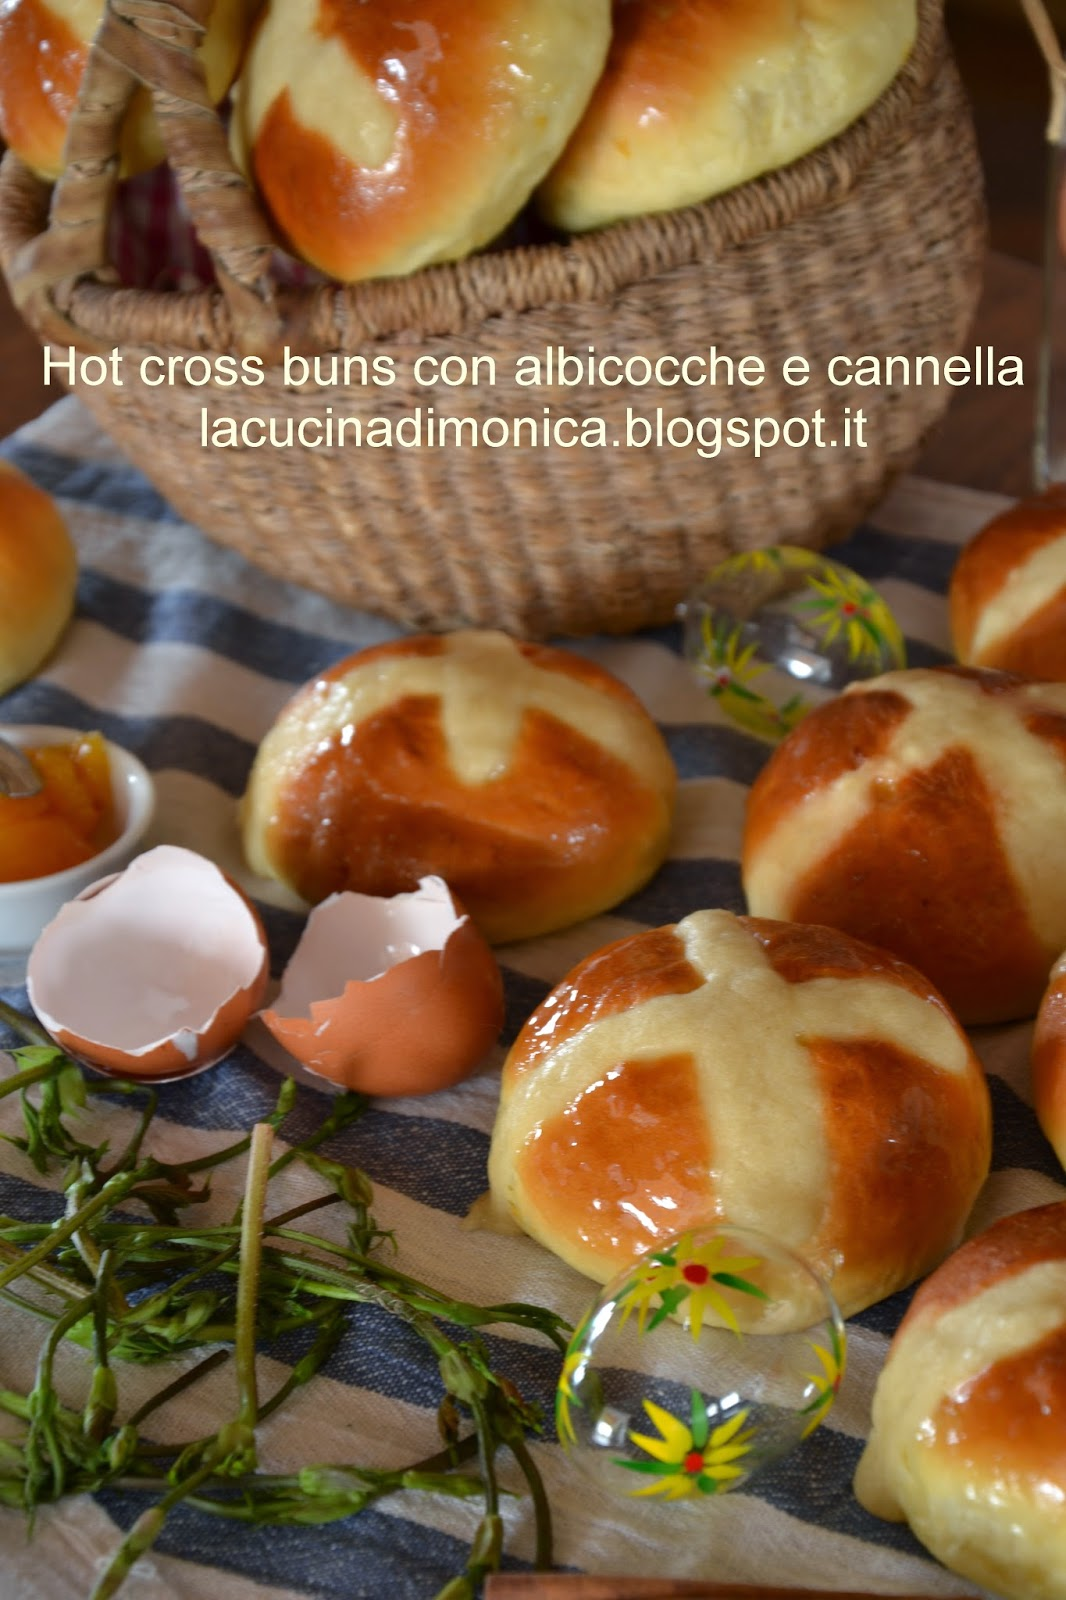 hot cross buns con albicocche e cannella